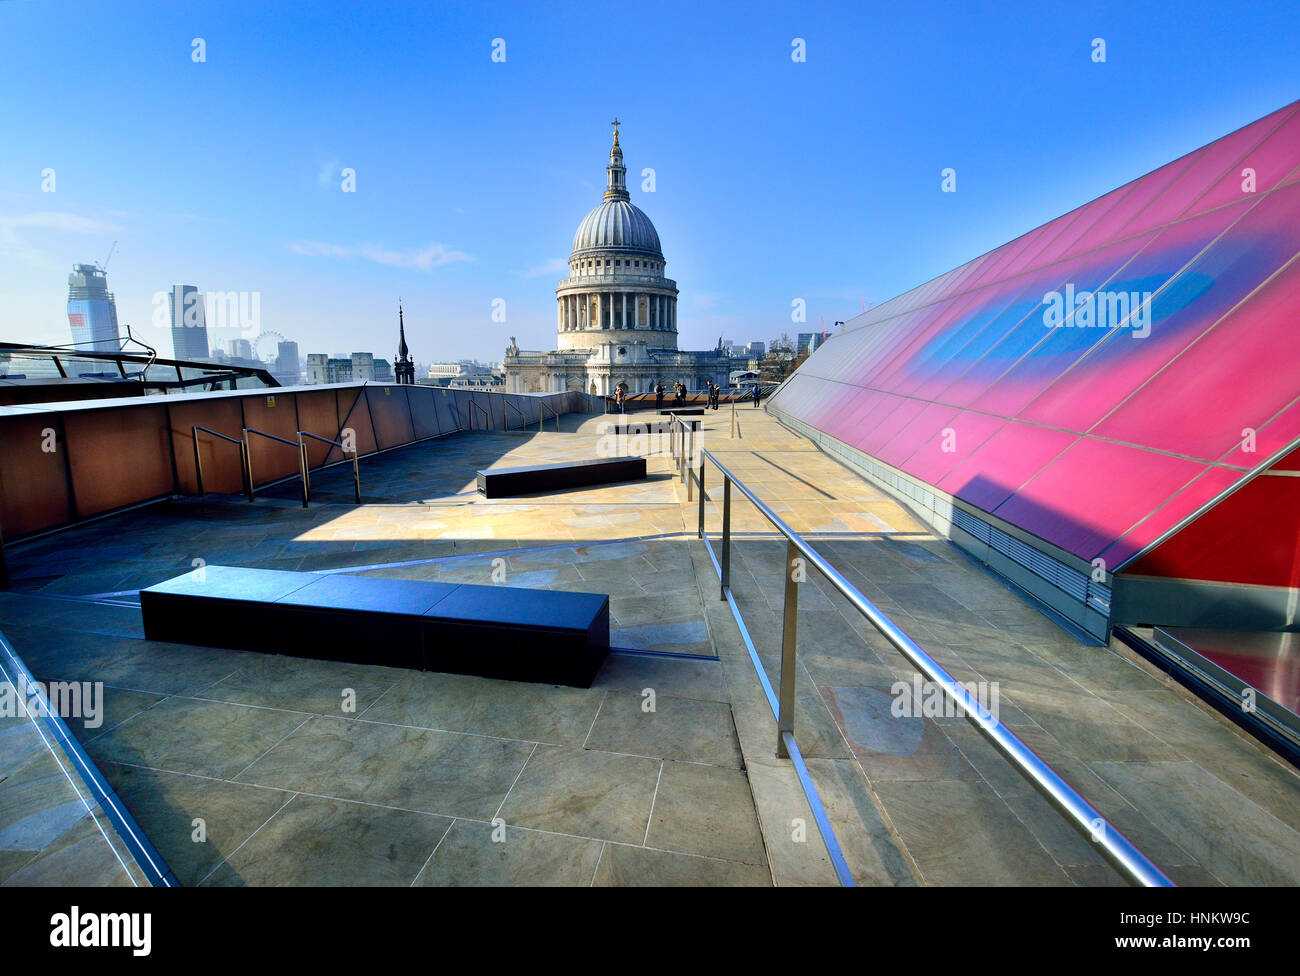 London, England, UK. St Paul's Cathedral seen from One New Change shopping centre roof terrace - Stock Image